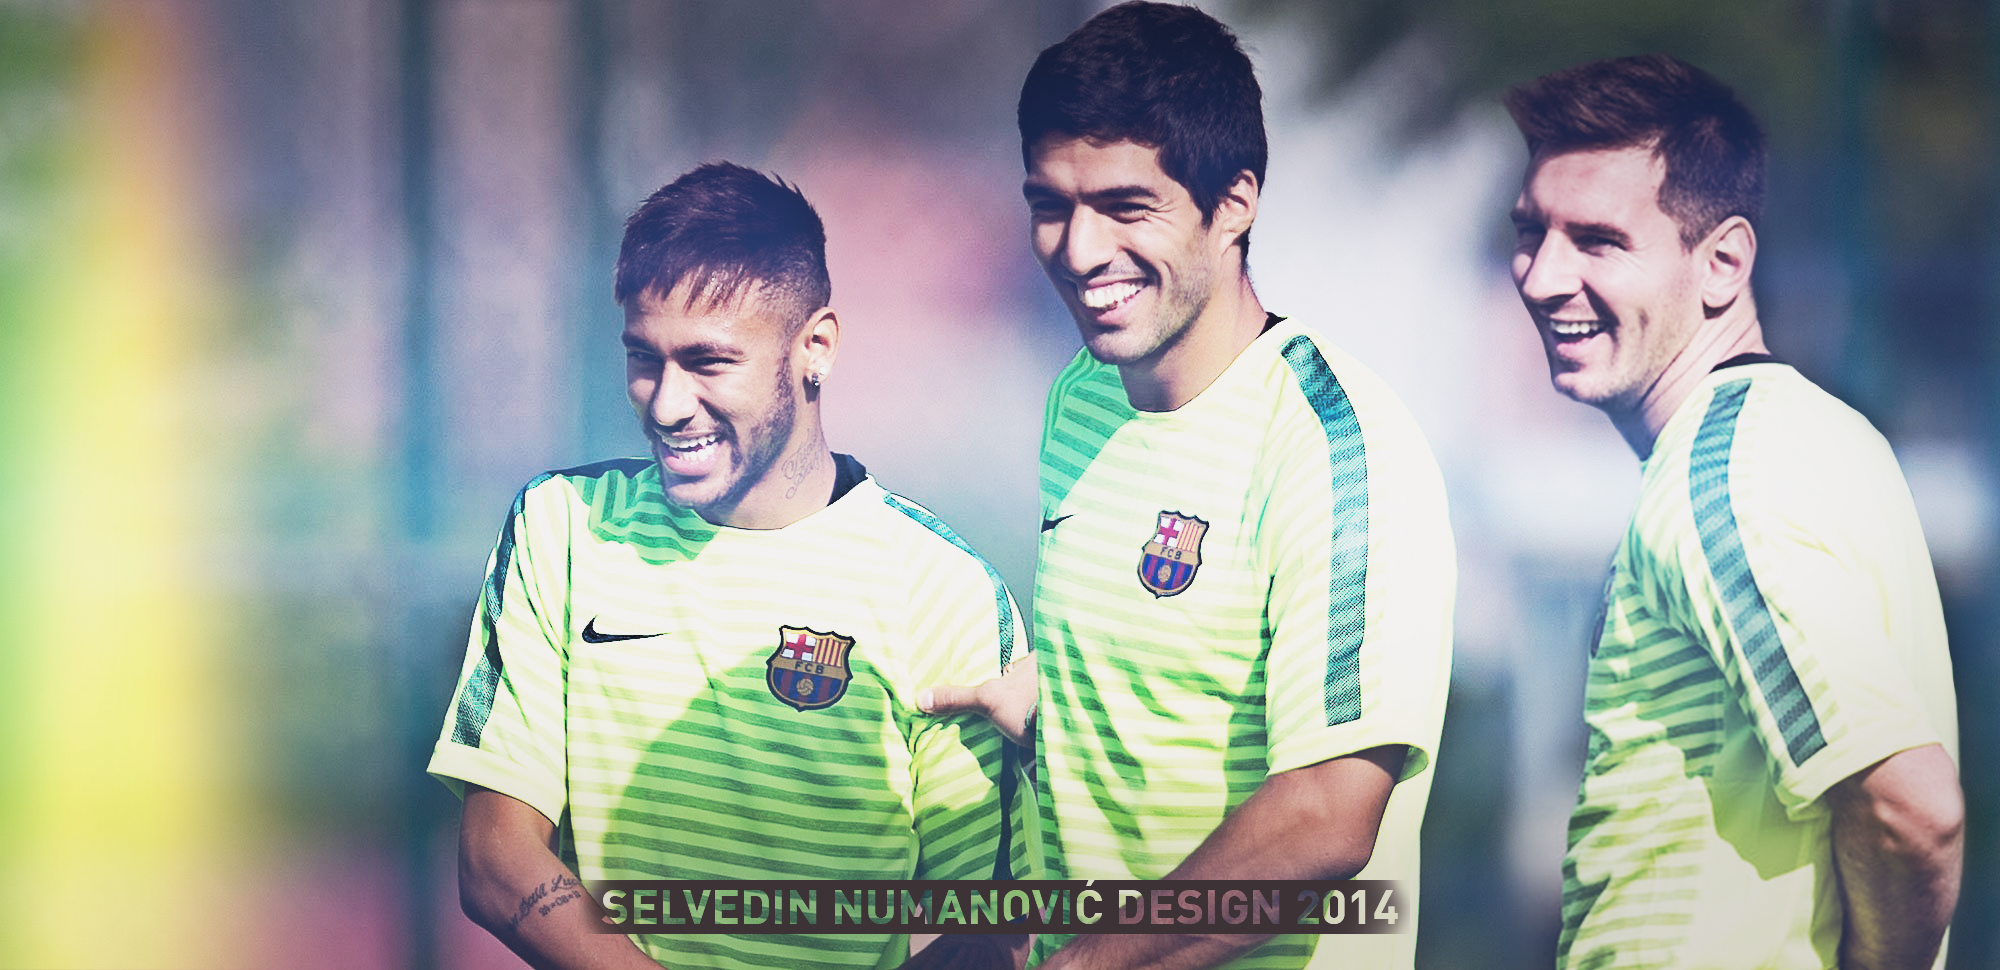 messi suarez neymar edit by selvedinfcb fan art wallpaper other 2014 2000x970